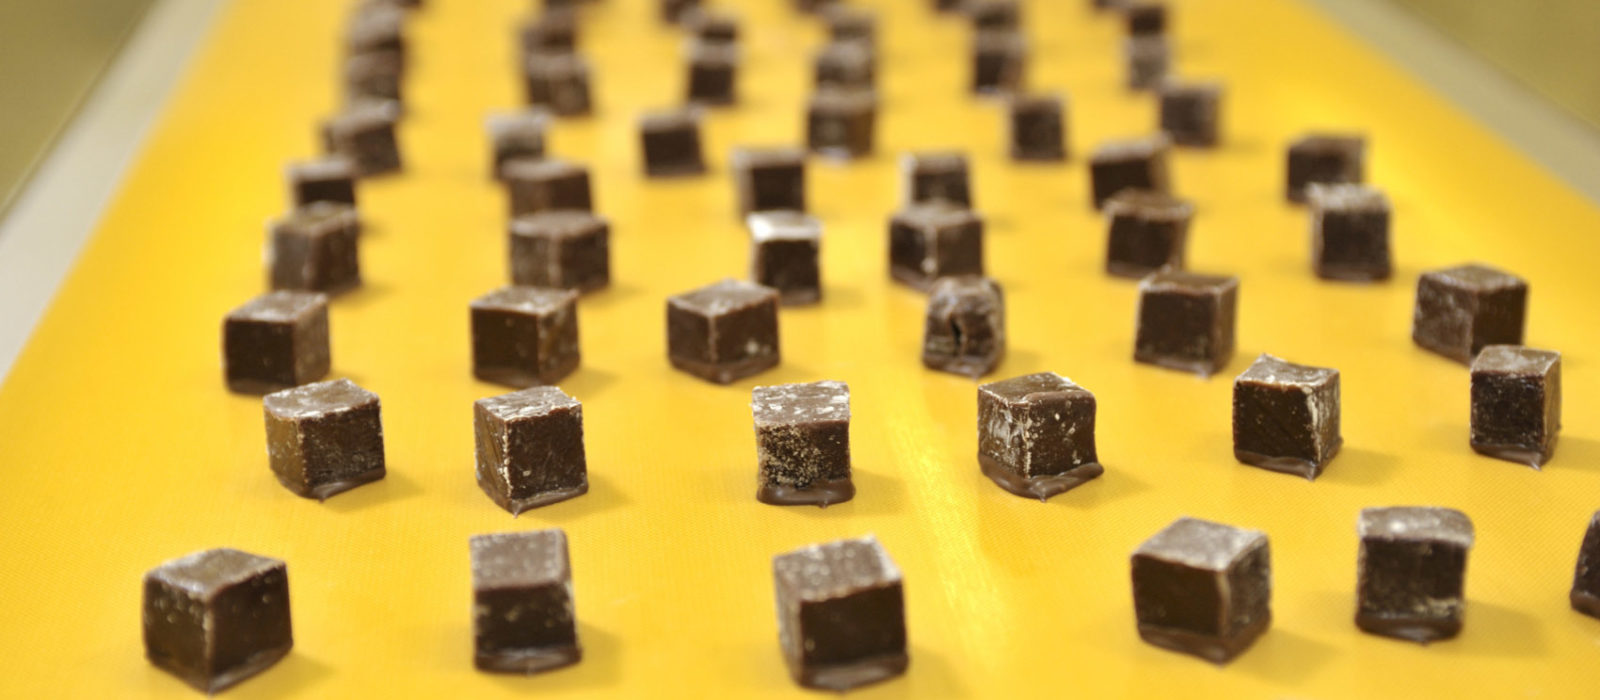 How to Select the Right Food Grade Conveyor Belt for Confections